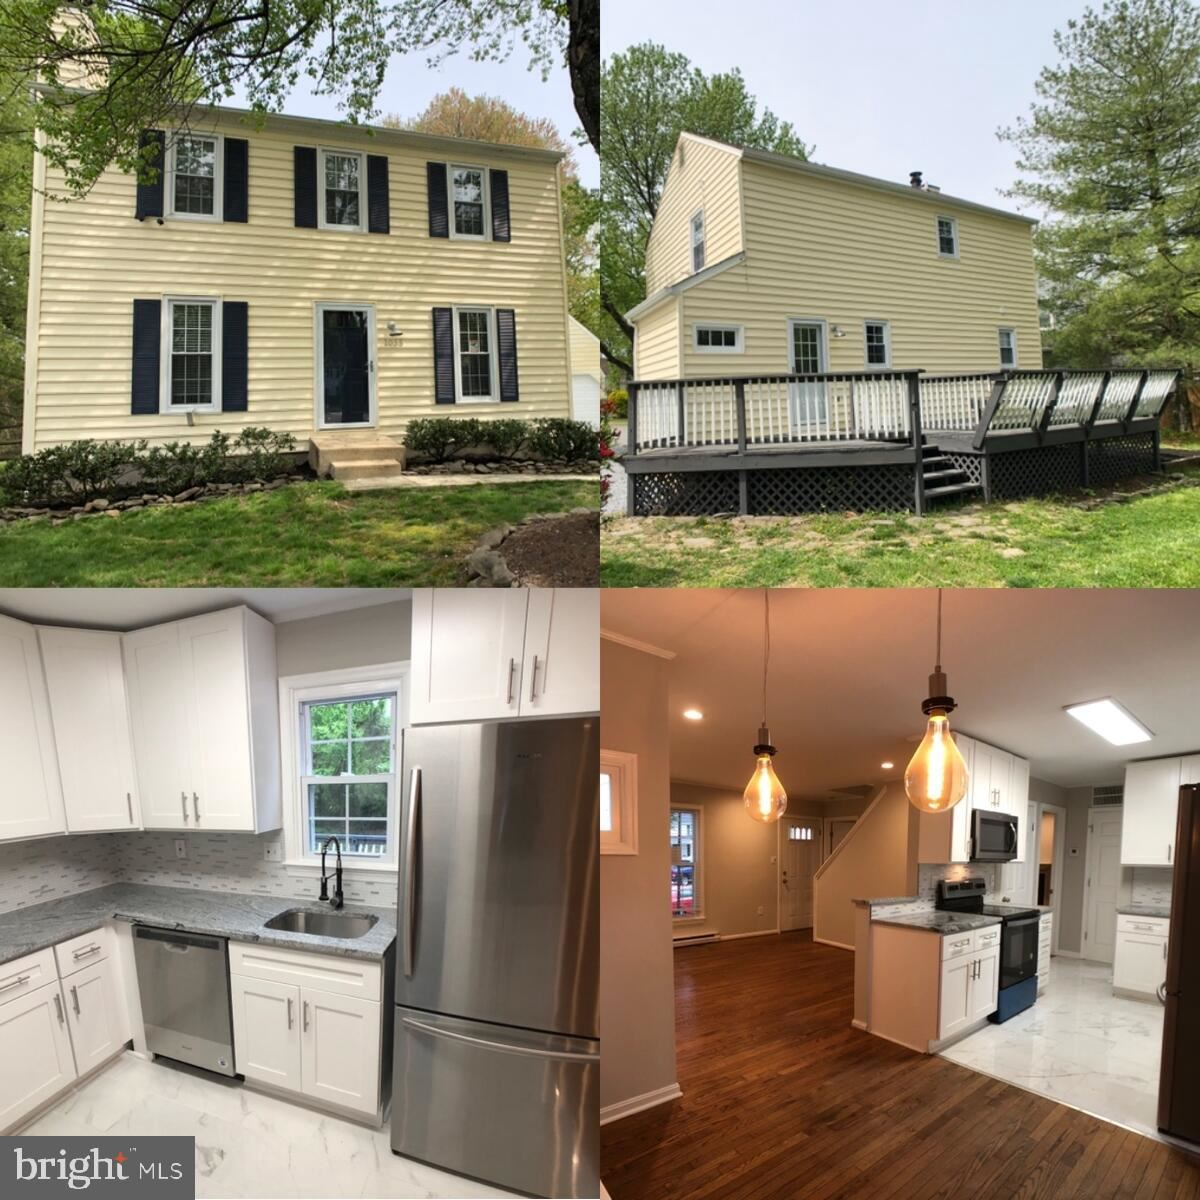 1035 HYDE PARK DR, Annapolis, MD 21403 - MLS#: MDAA467786